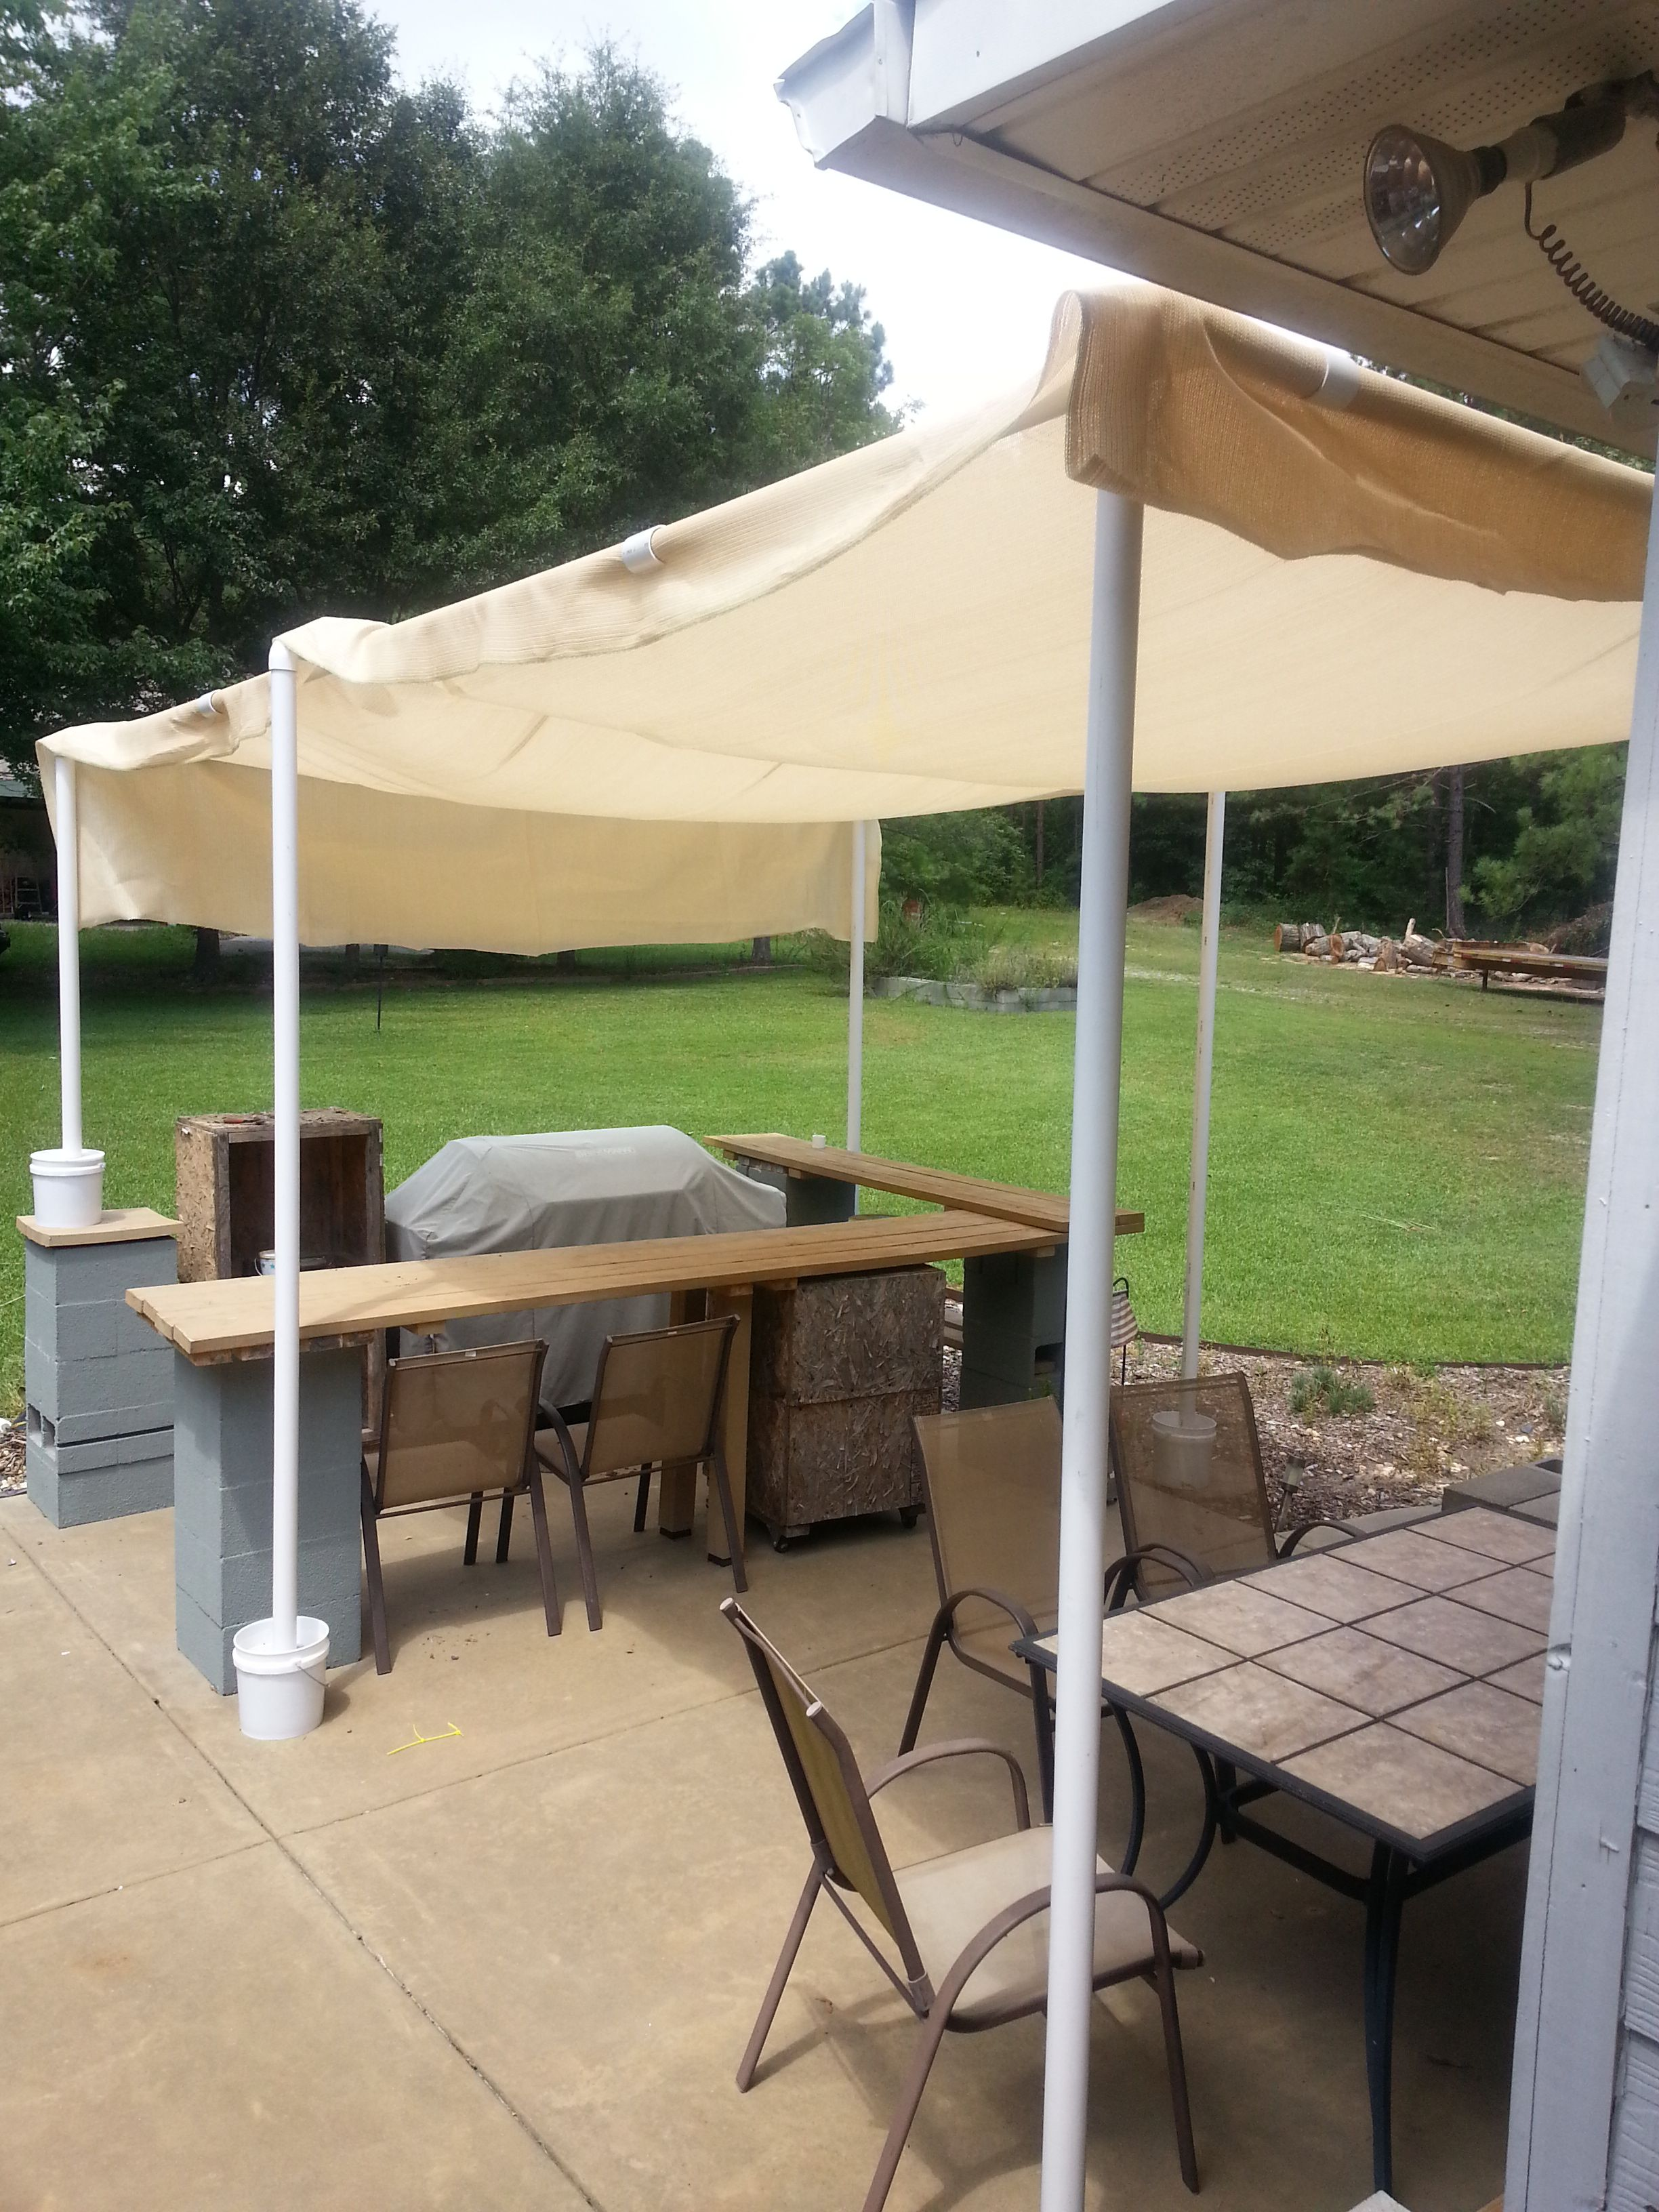 Pin On Stuff I Ve Made Built Pvc Pipe Canopy For Backyard Bar And Grill